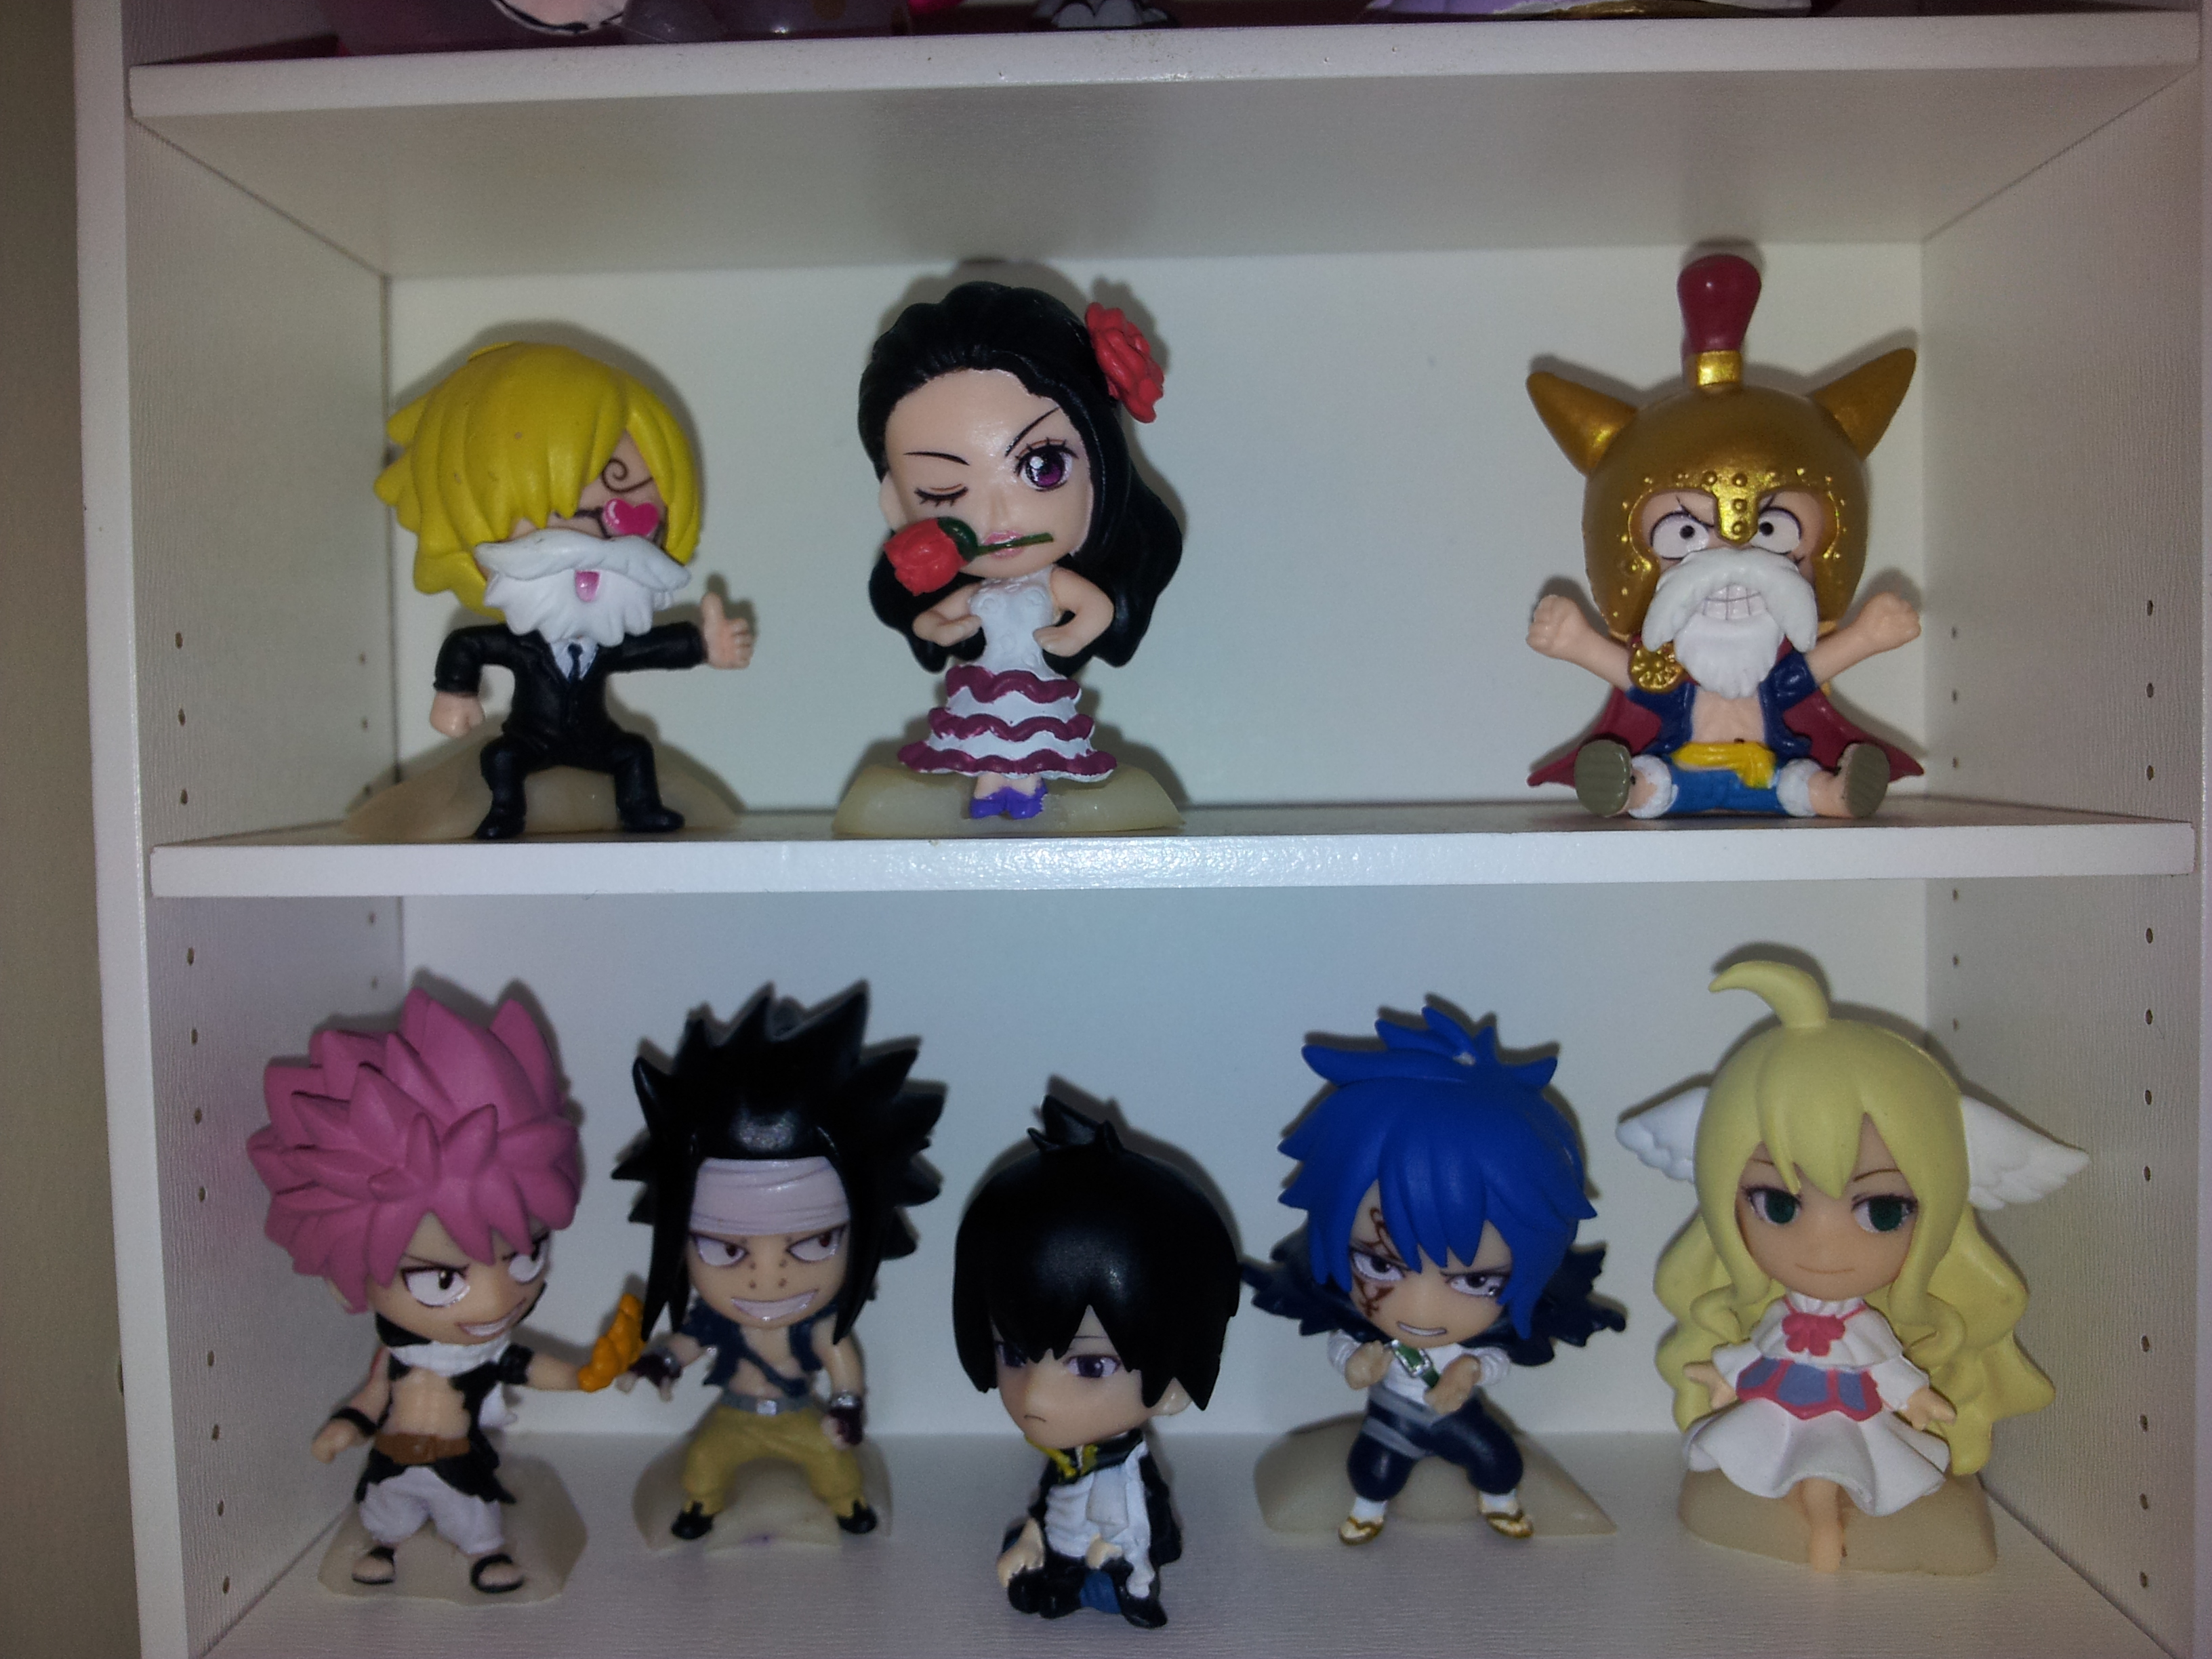 strap one_piece sanji bandai swing fairy_tail oda_eiichiro viola natsu_dragneel gajeel_redfox one_piece_dressrosa_#2_swing_set gladiator_lucy fairy_tail_swing_2 jellal_fernandes zeref mavis_vermilion